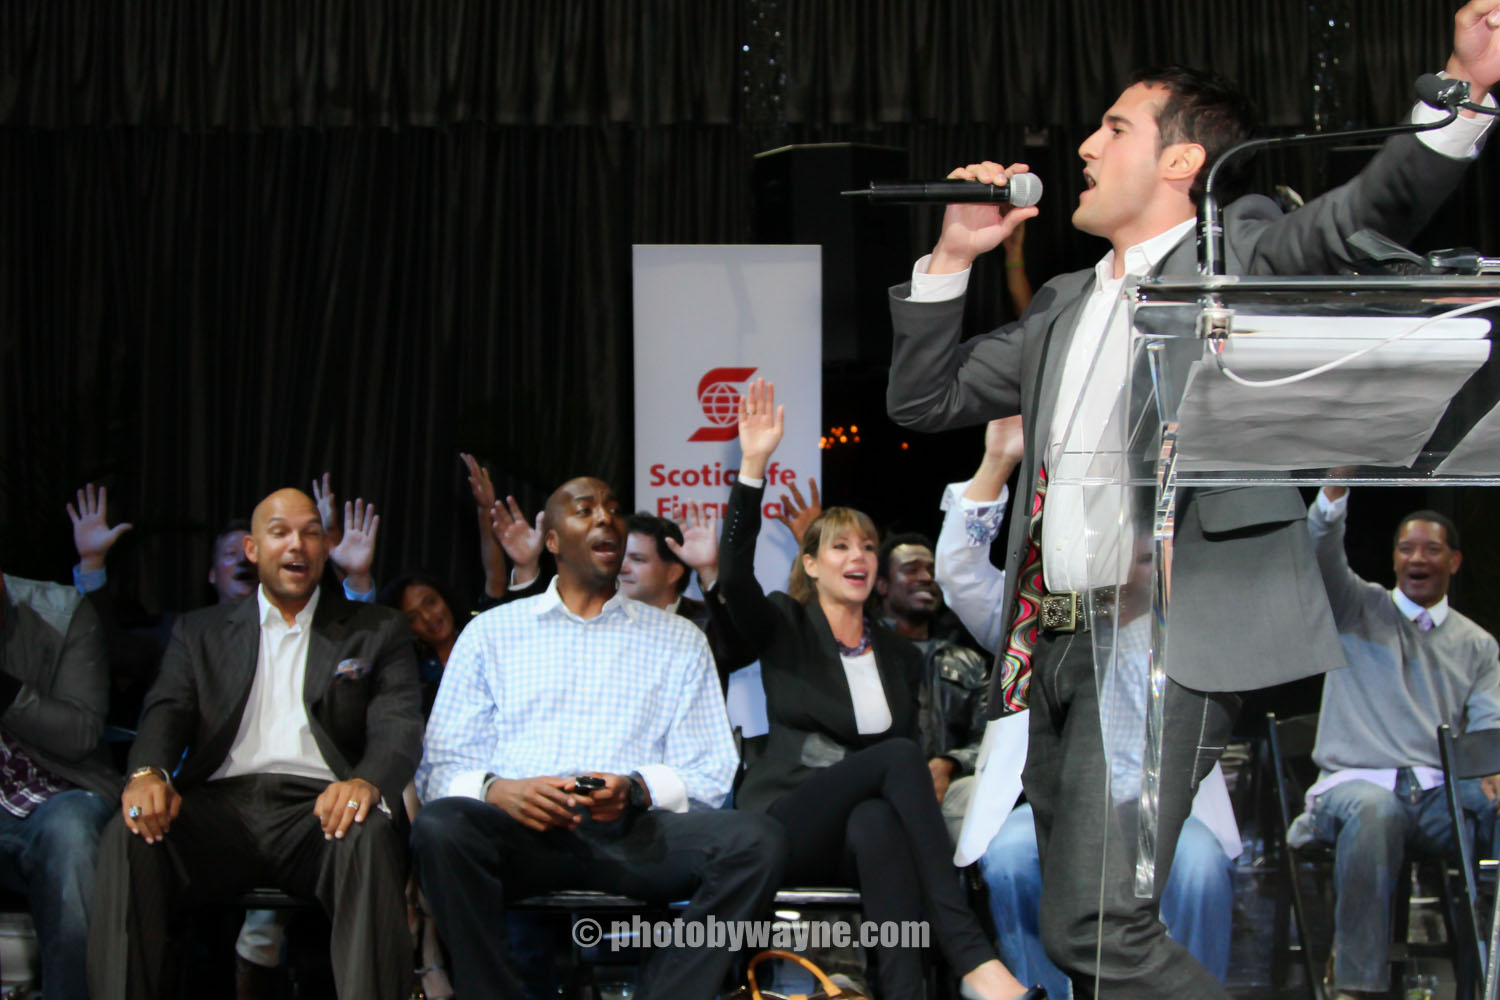 celebrity charity event photography